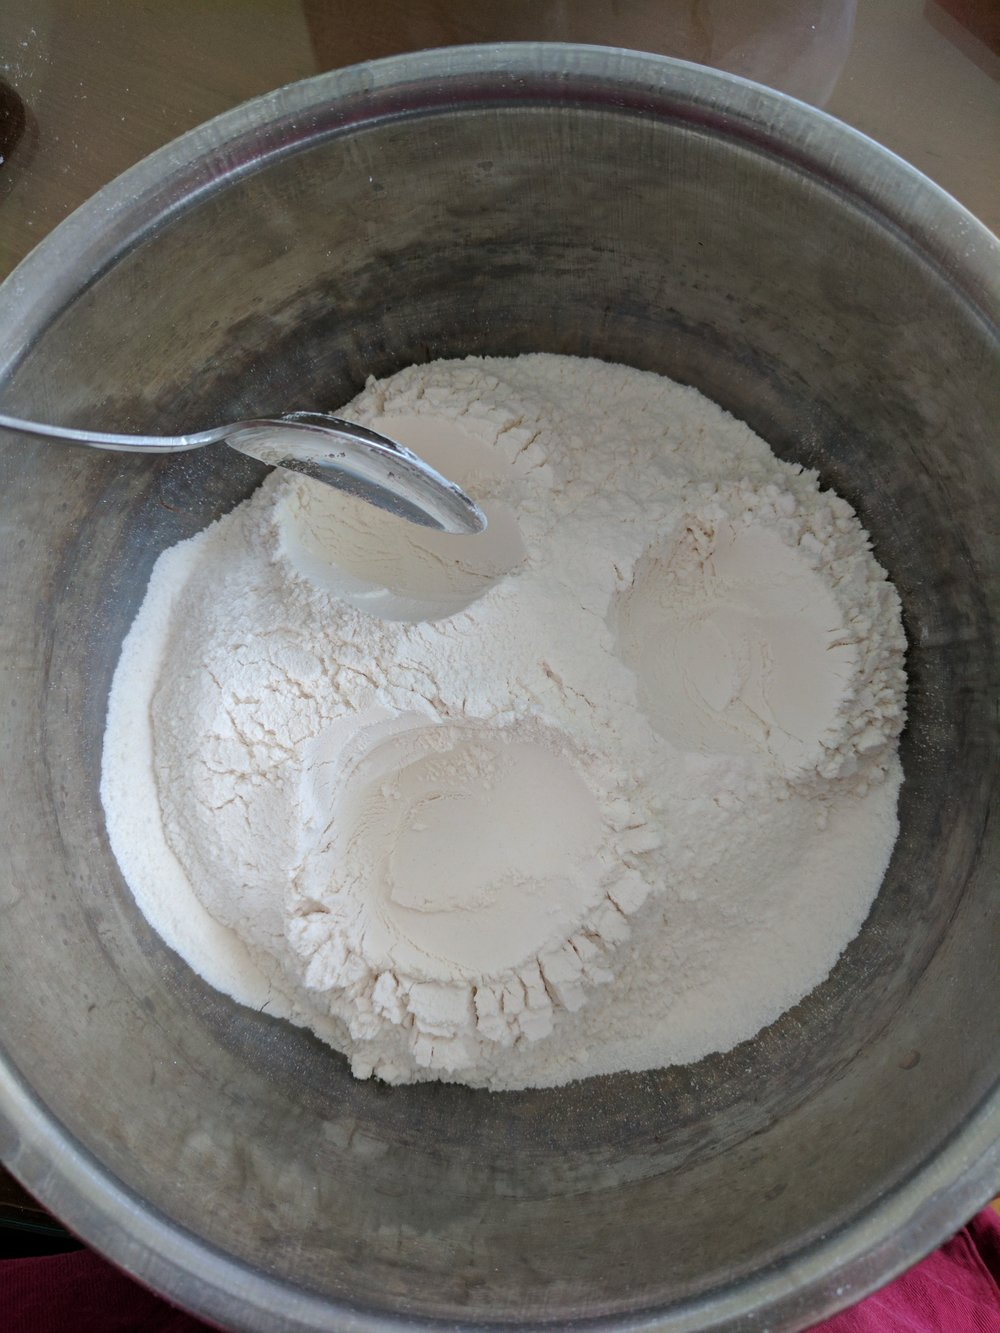 1. Place sifted flour in a mixing bowl. Use back of a spoon to dug three holes